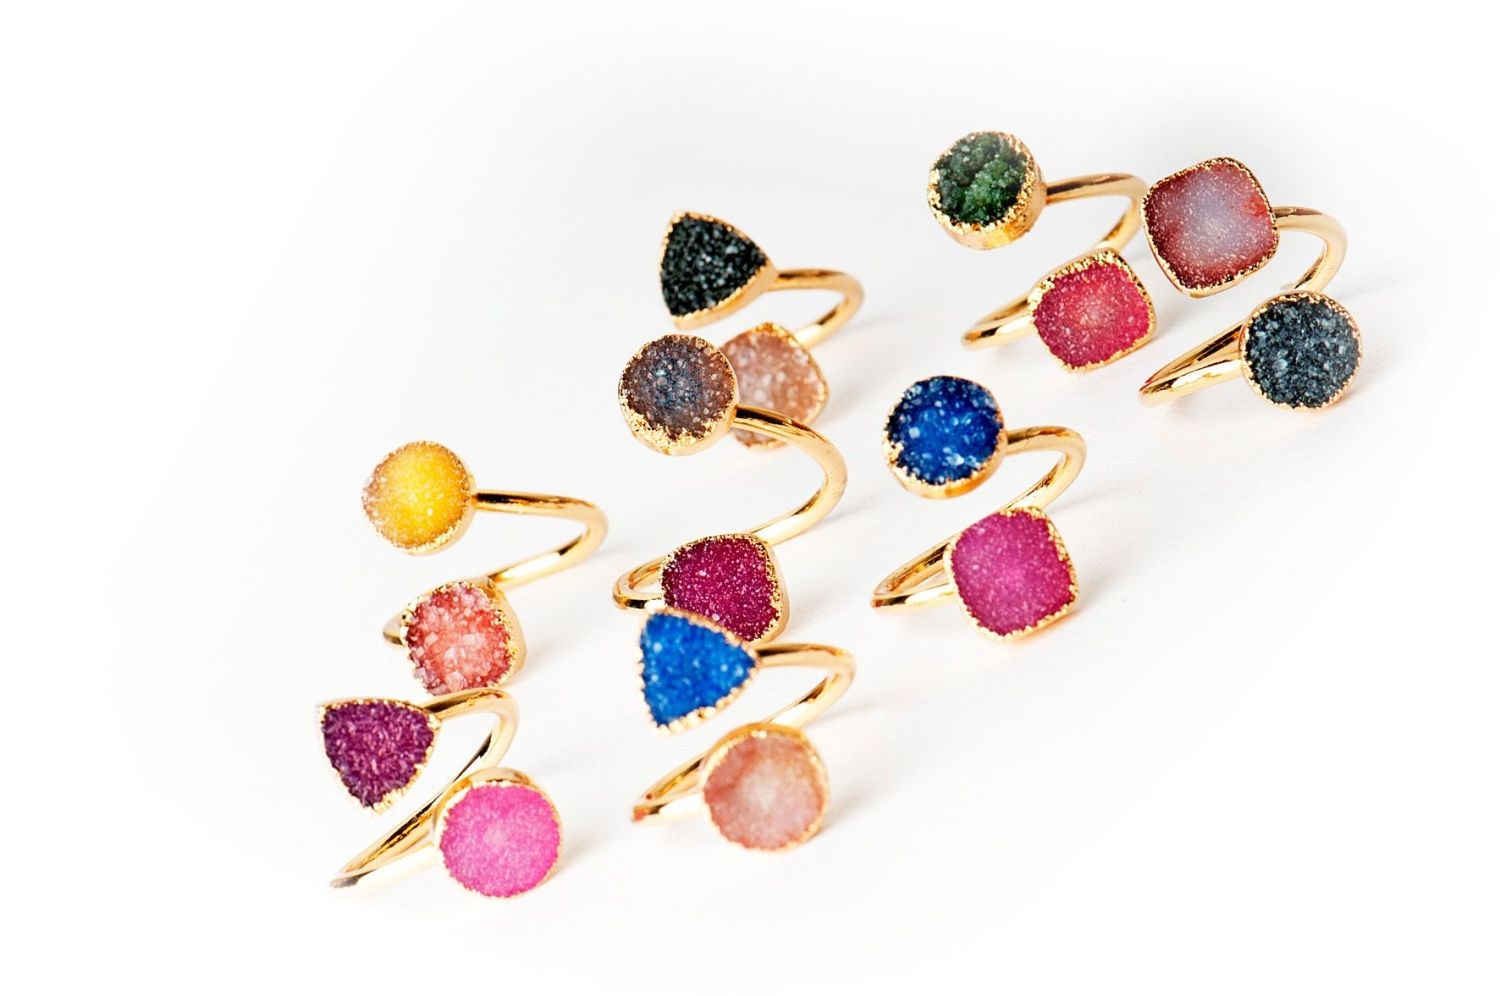 Druzy Rocks Rings Autumn Collection 2016